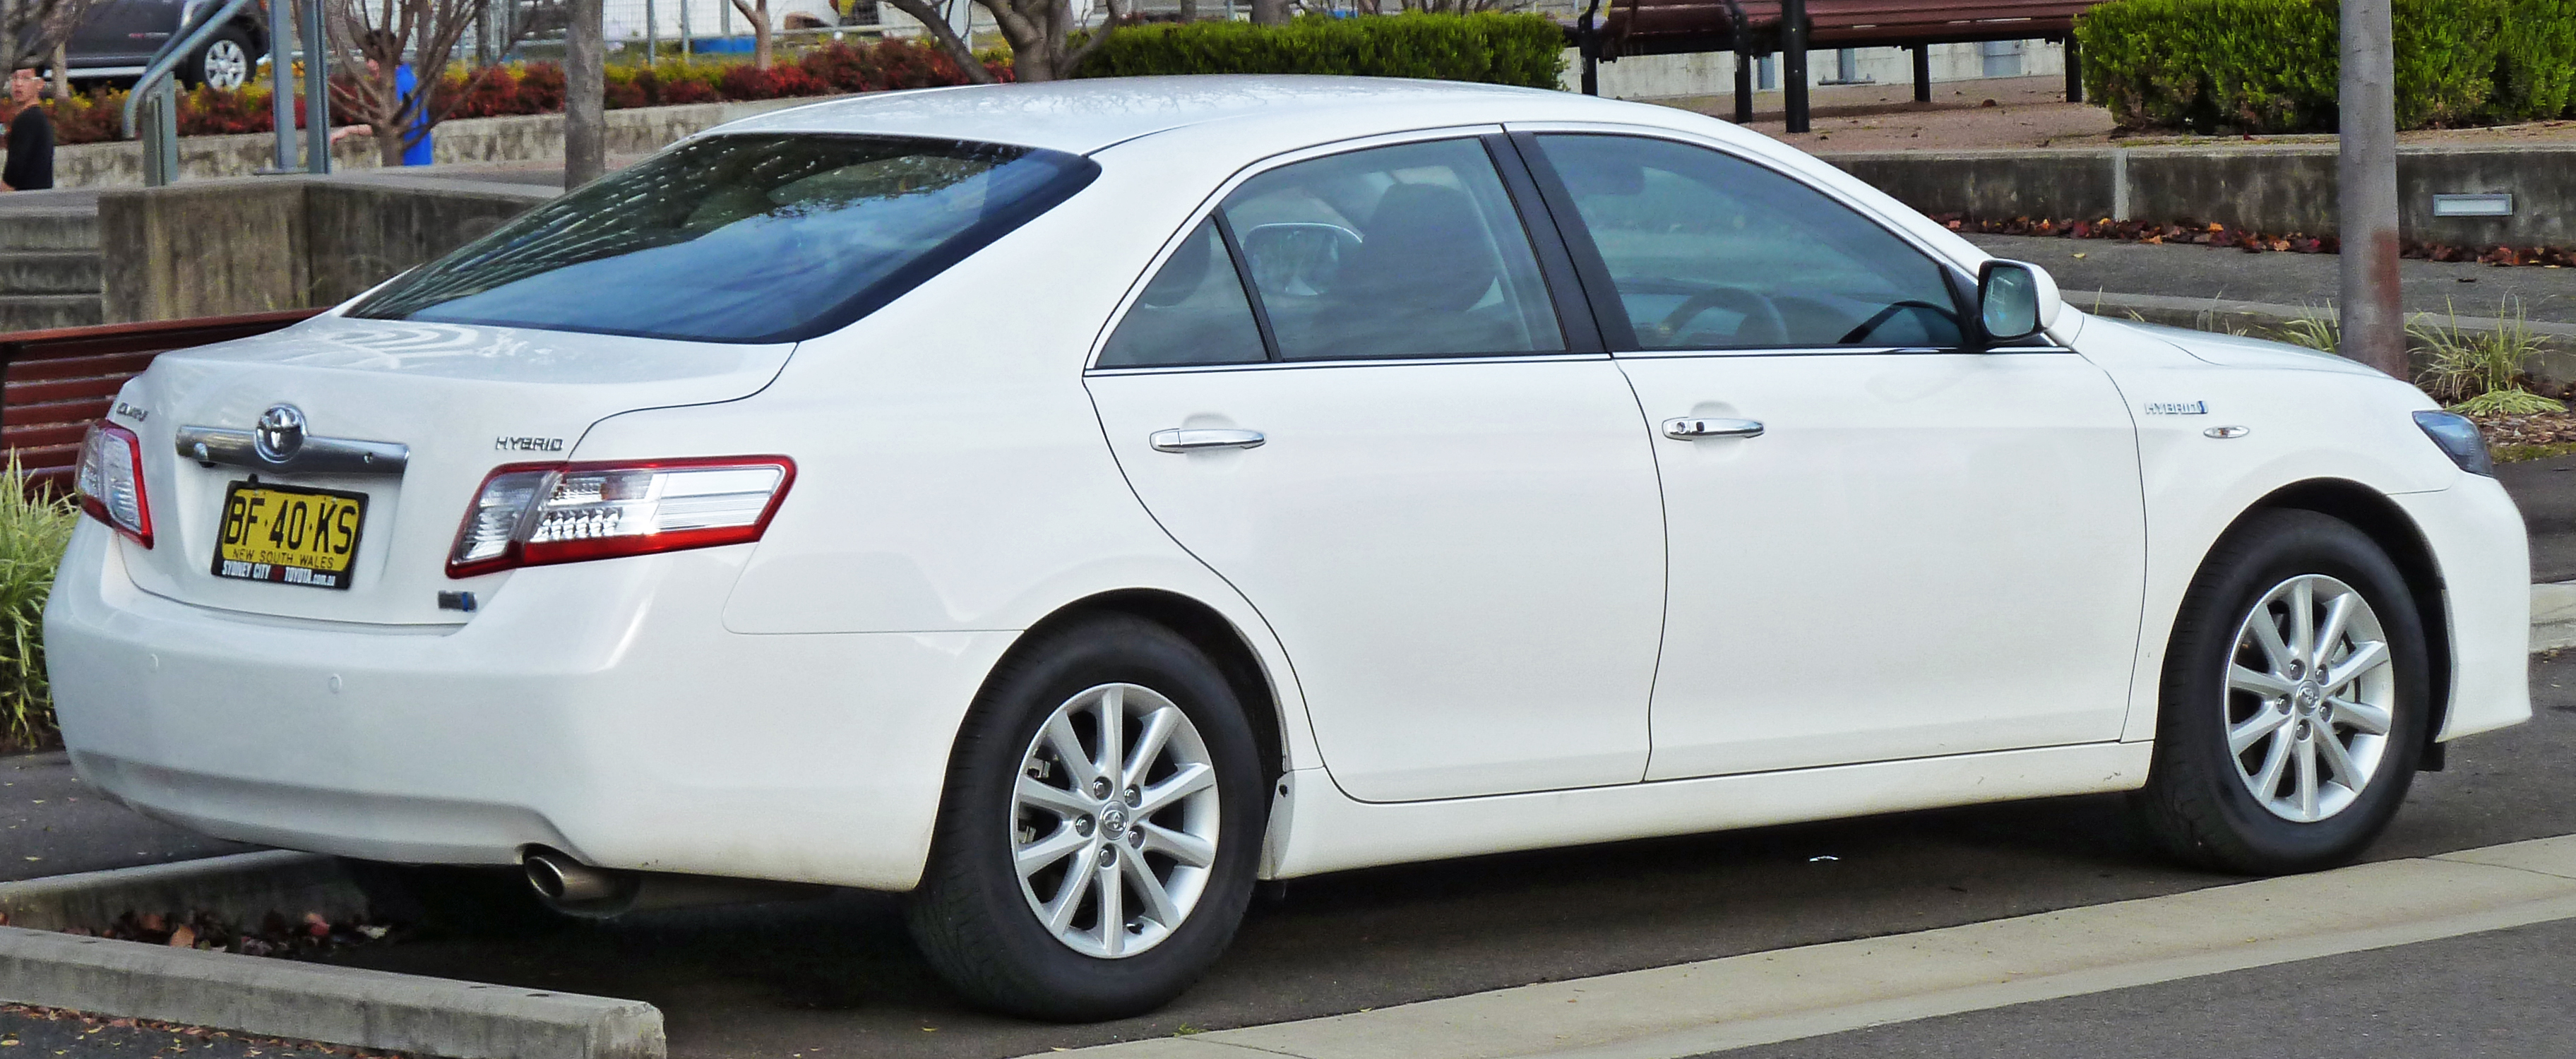 qatar vehicles toyota title for index camry information living advert sale carsedan